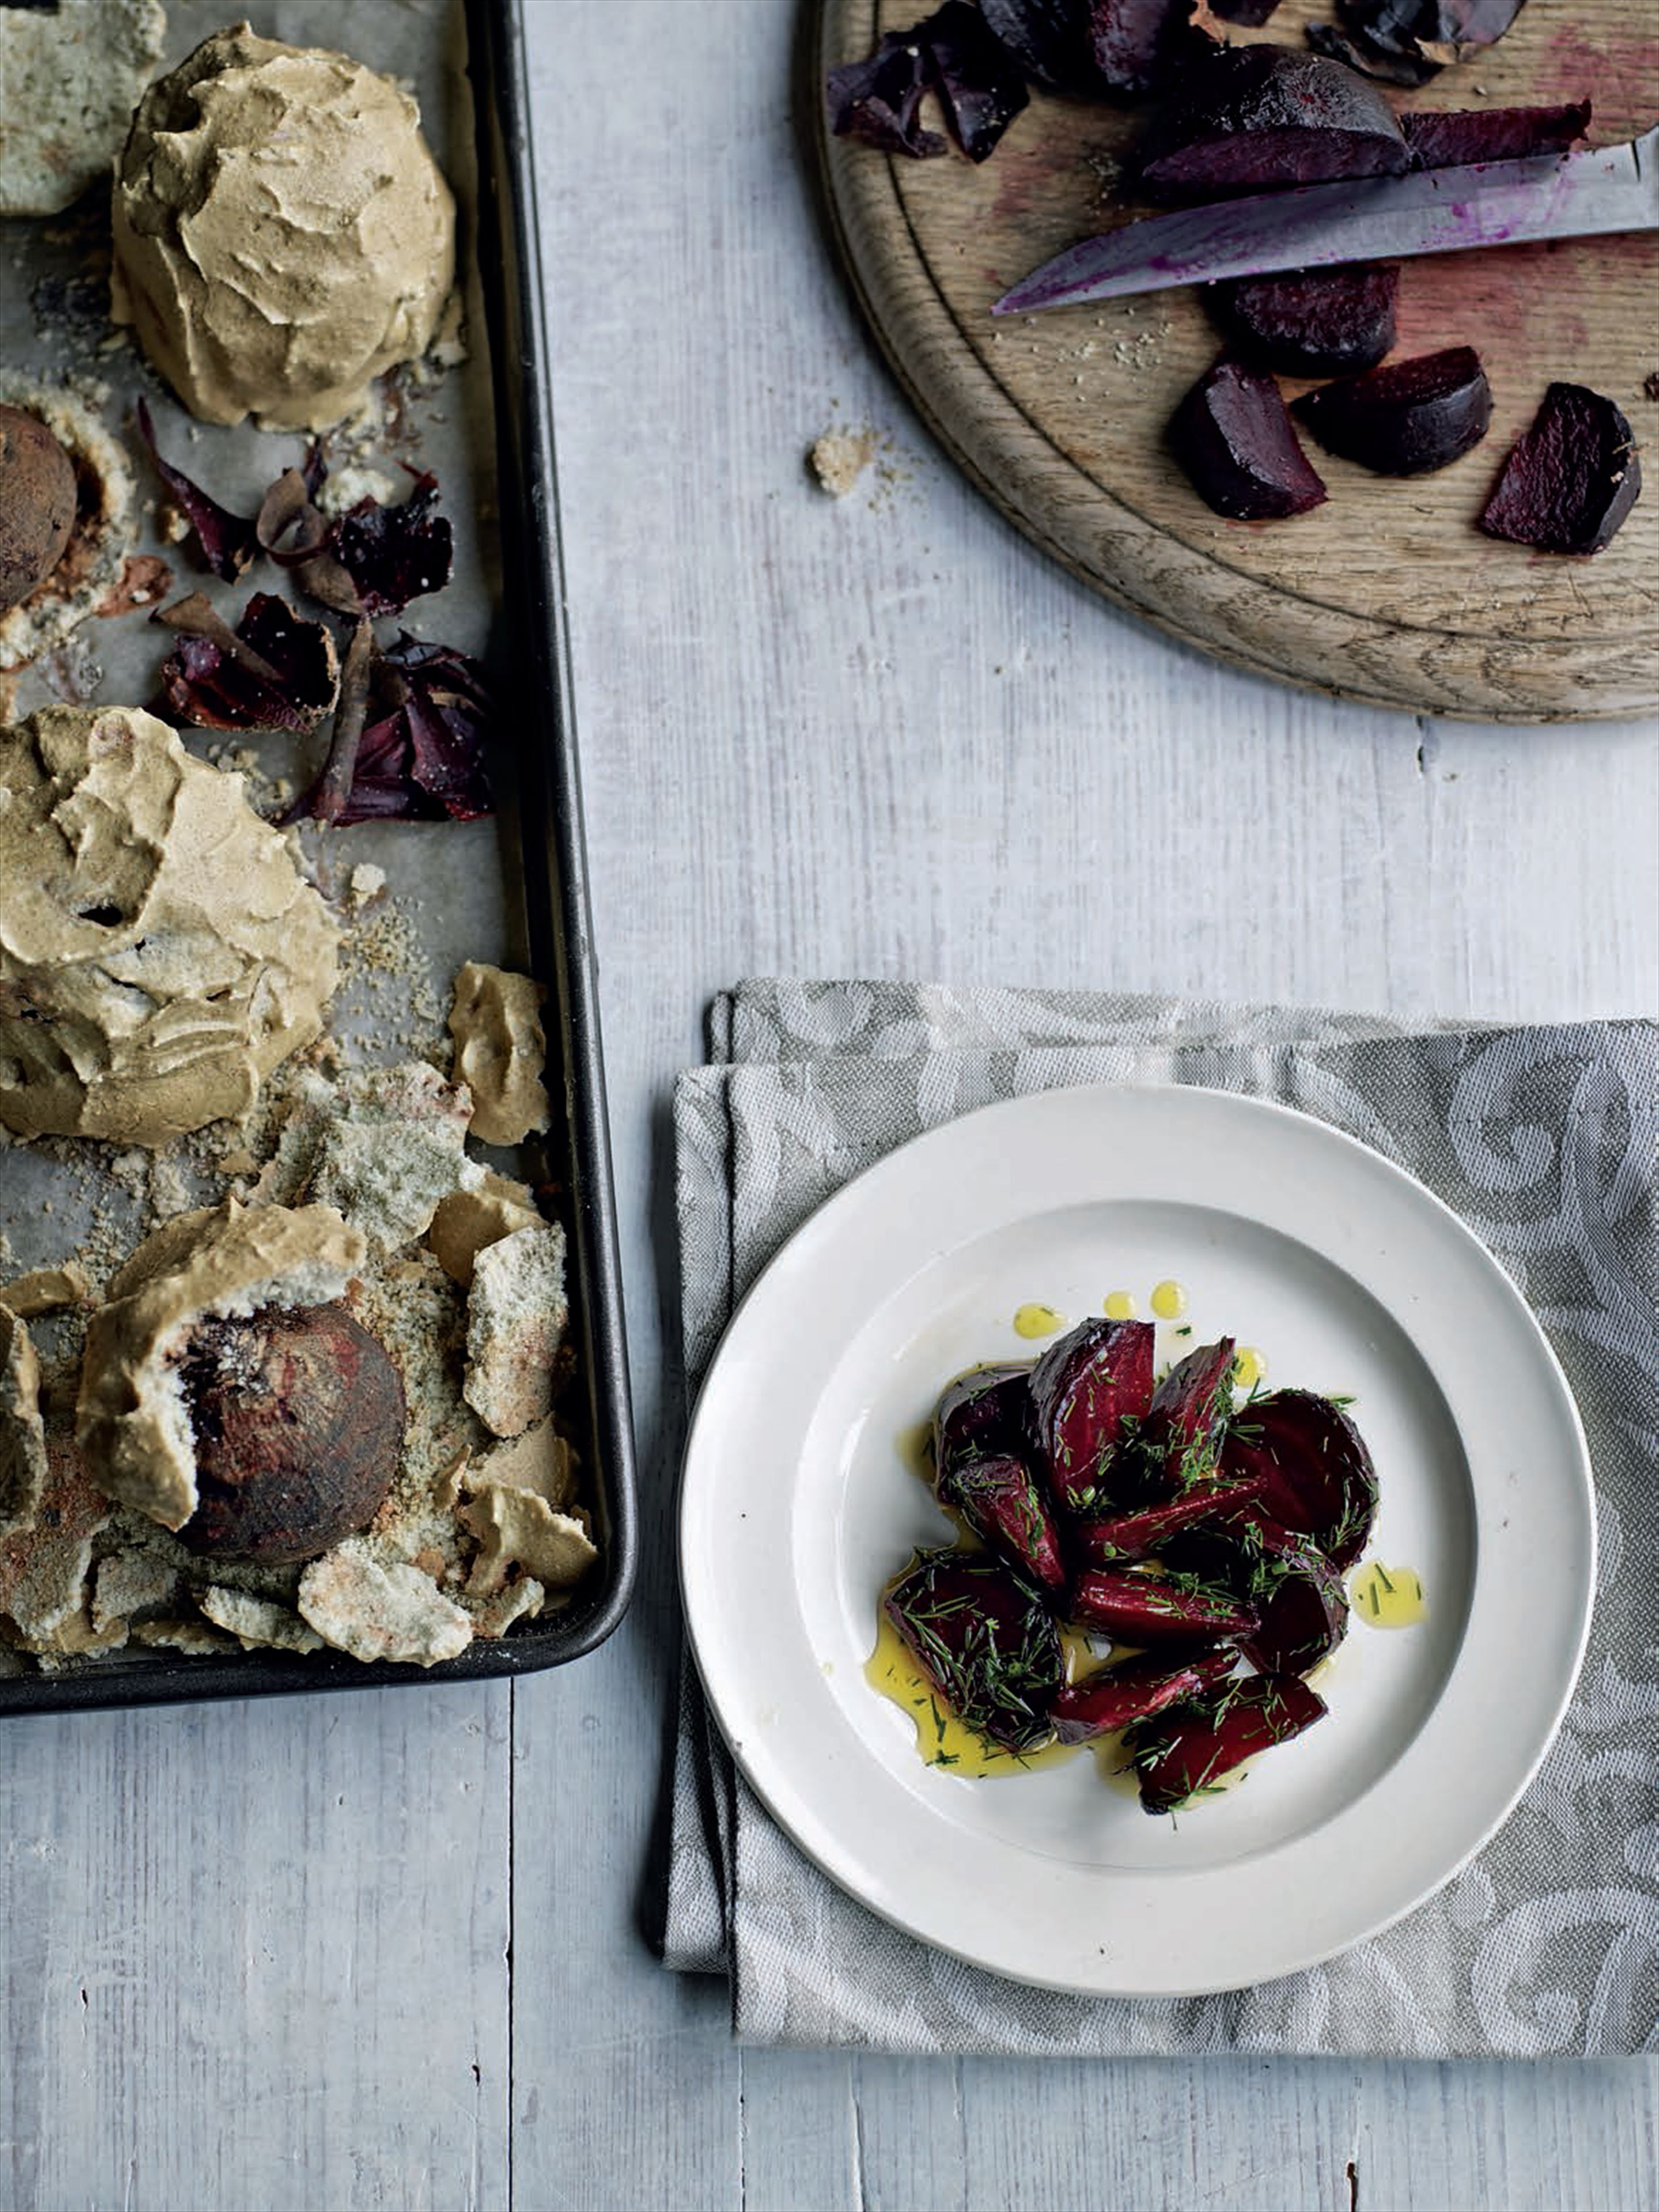 Salt-baked beetroot